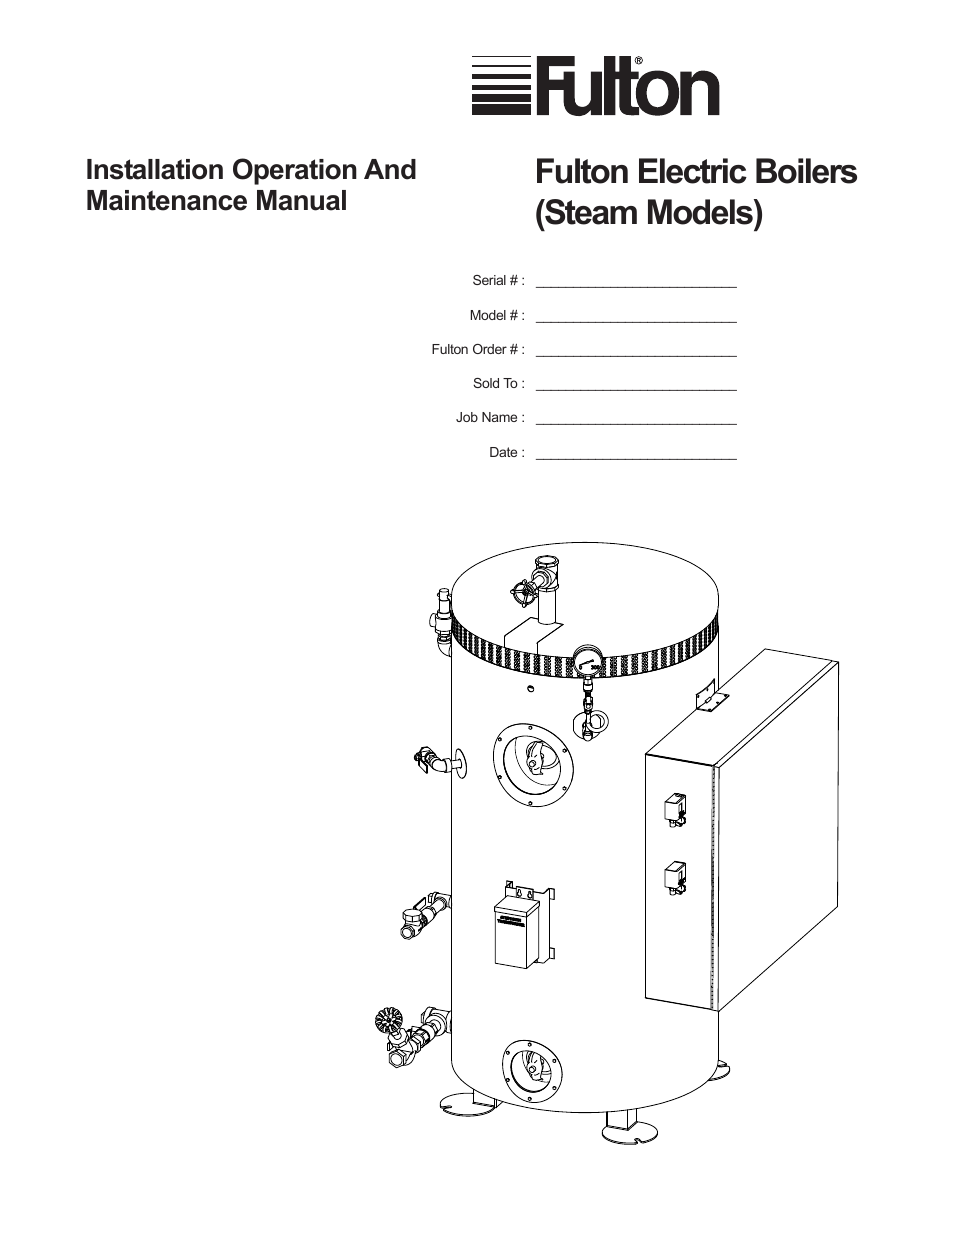 fulton electric fb l steam boiler page1 fulton electric (fb l) steam boiler user manual 46 pages steam boiler wiring diagram at readyjetset.co